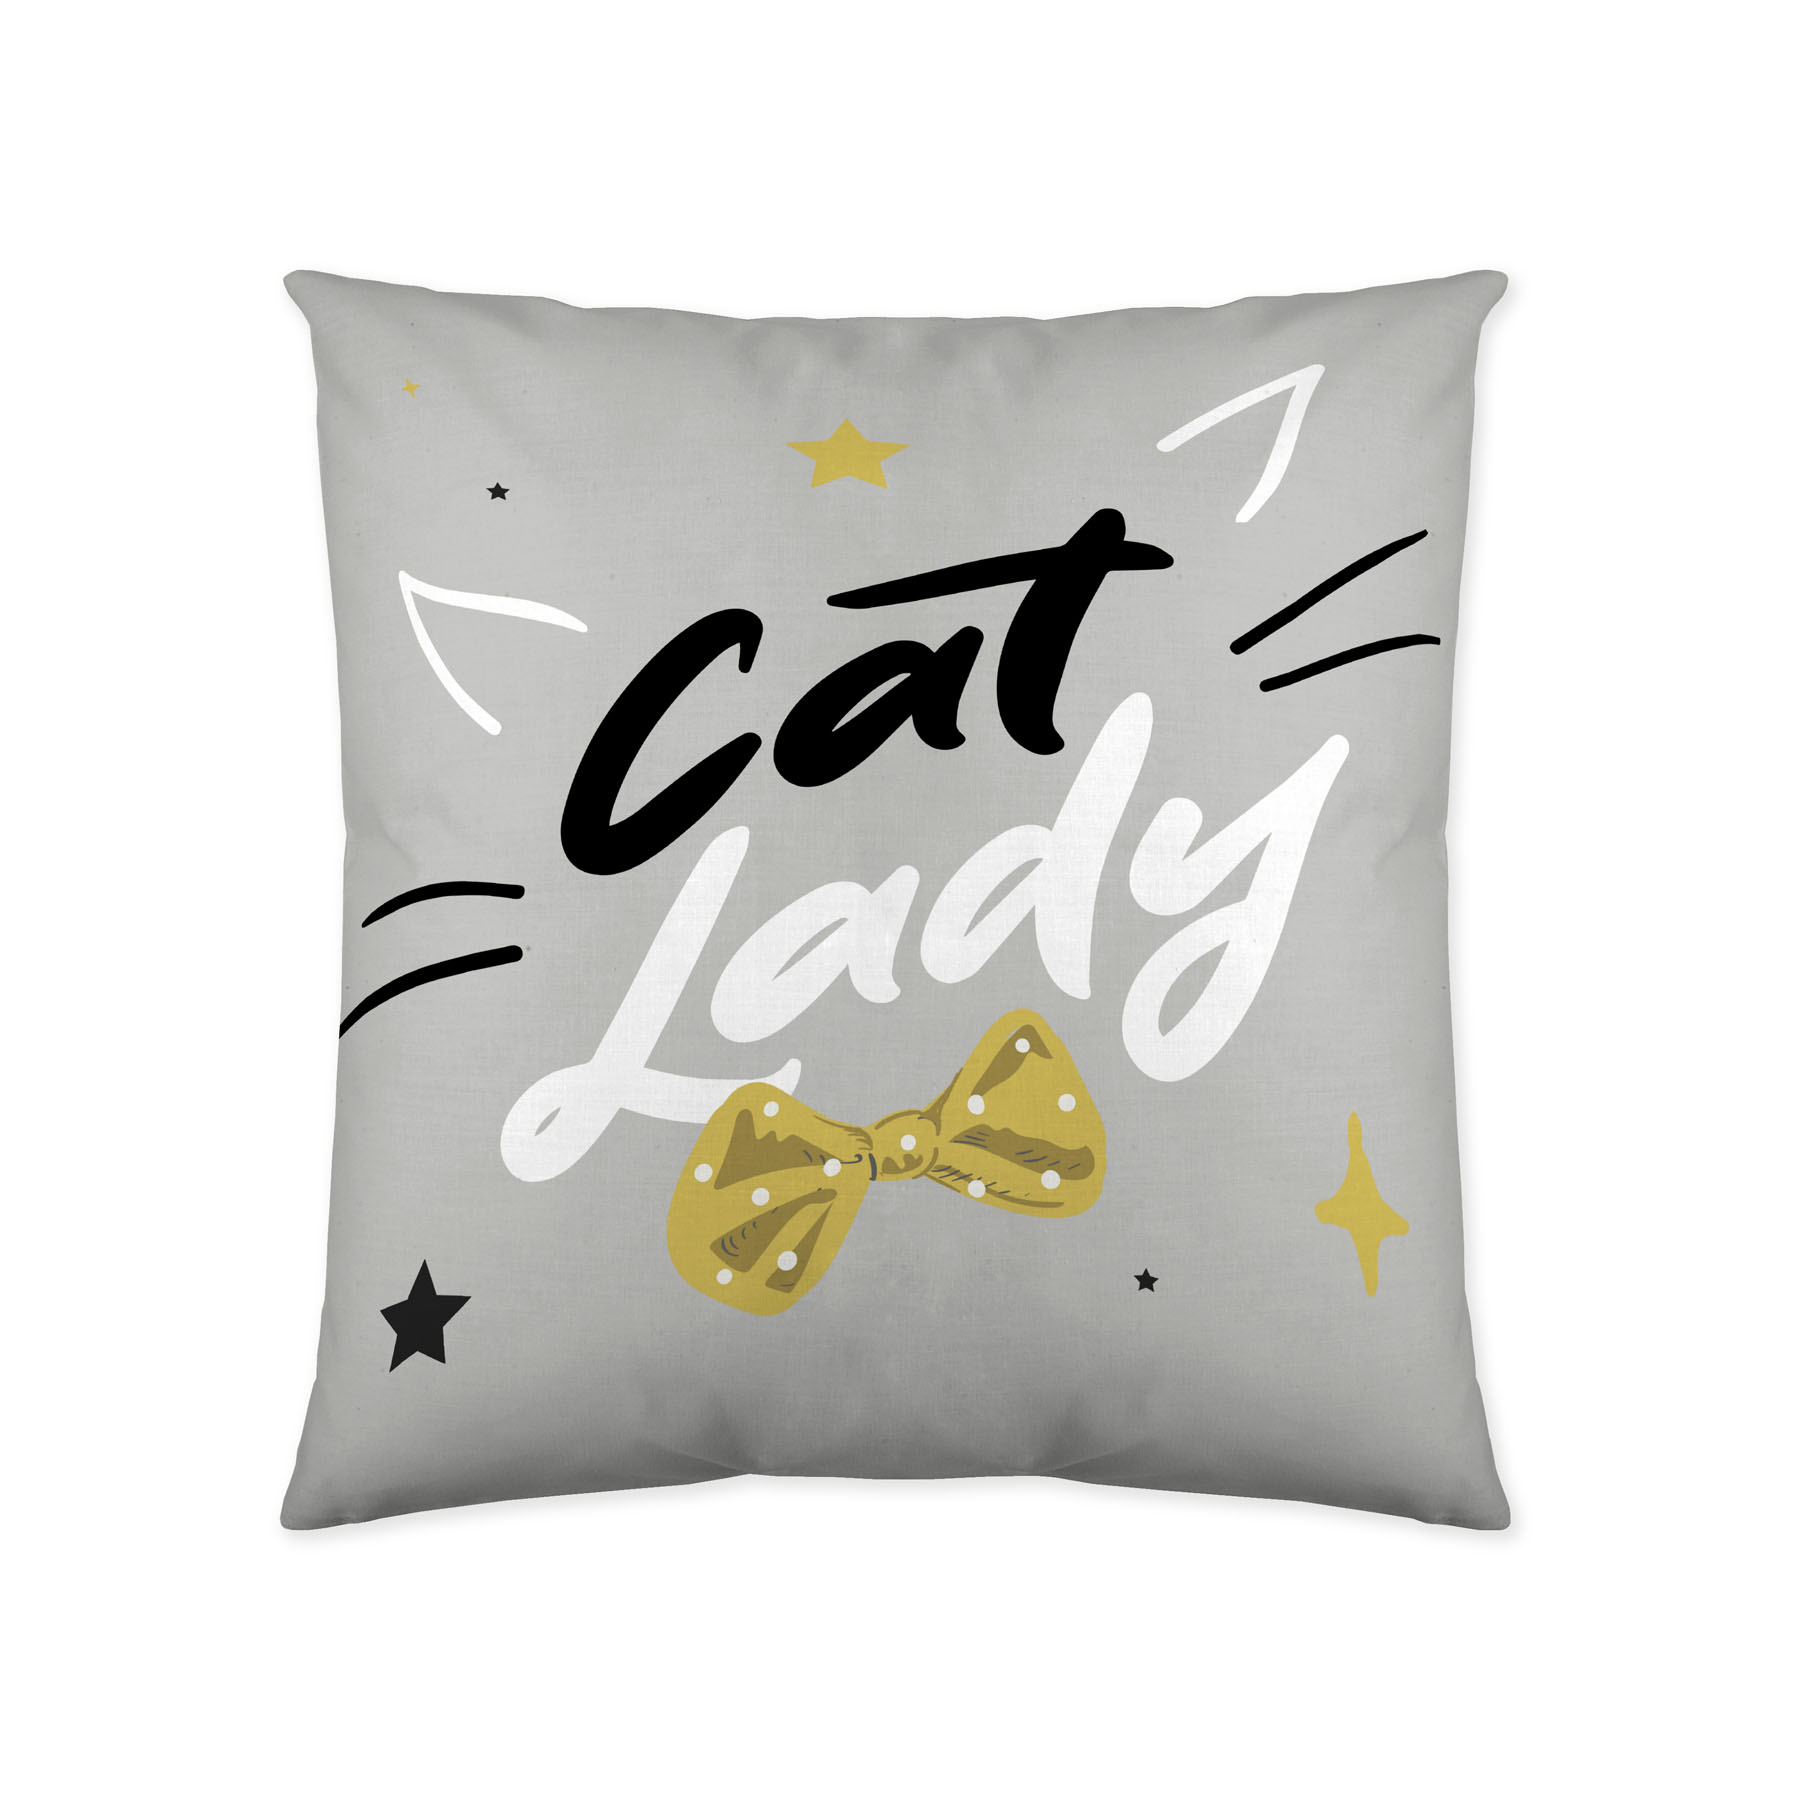 COJIN REVERSIBLE LADY CAT 50x50 cm - SIN RELLENO